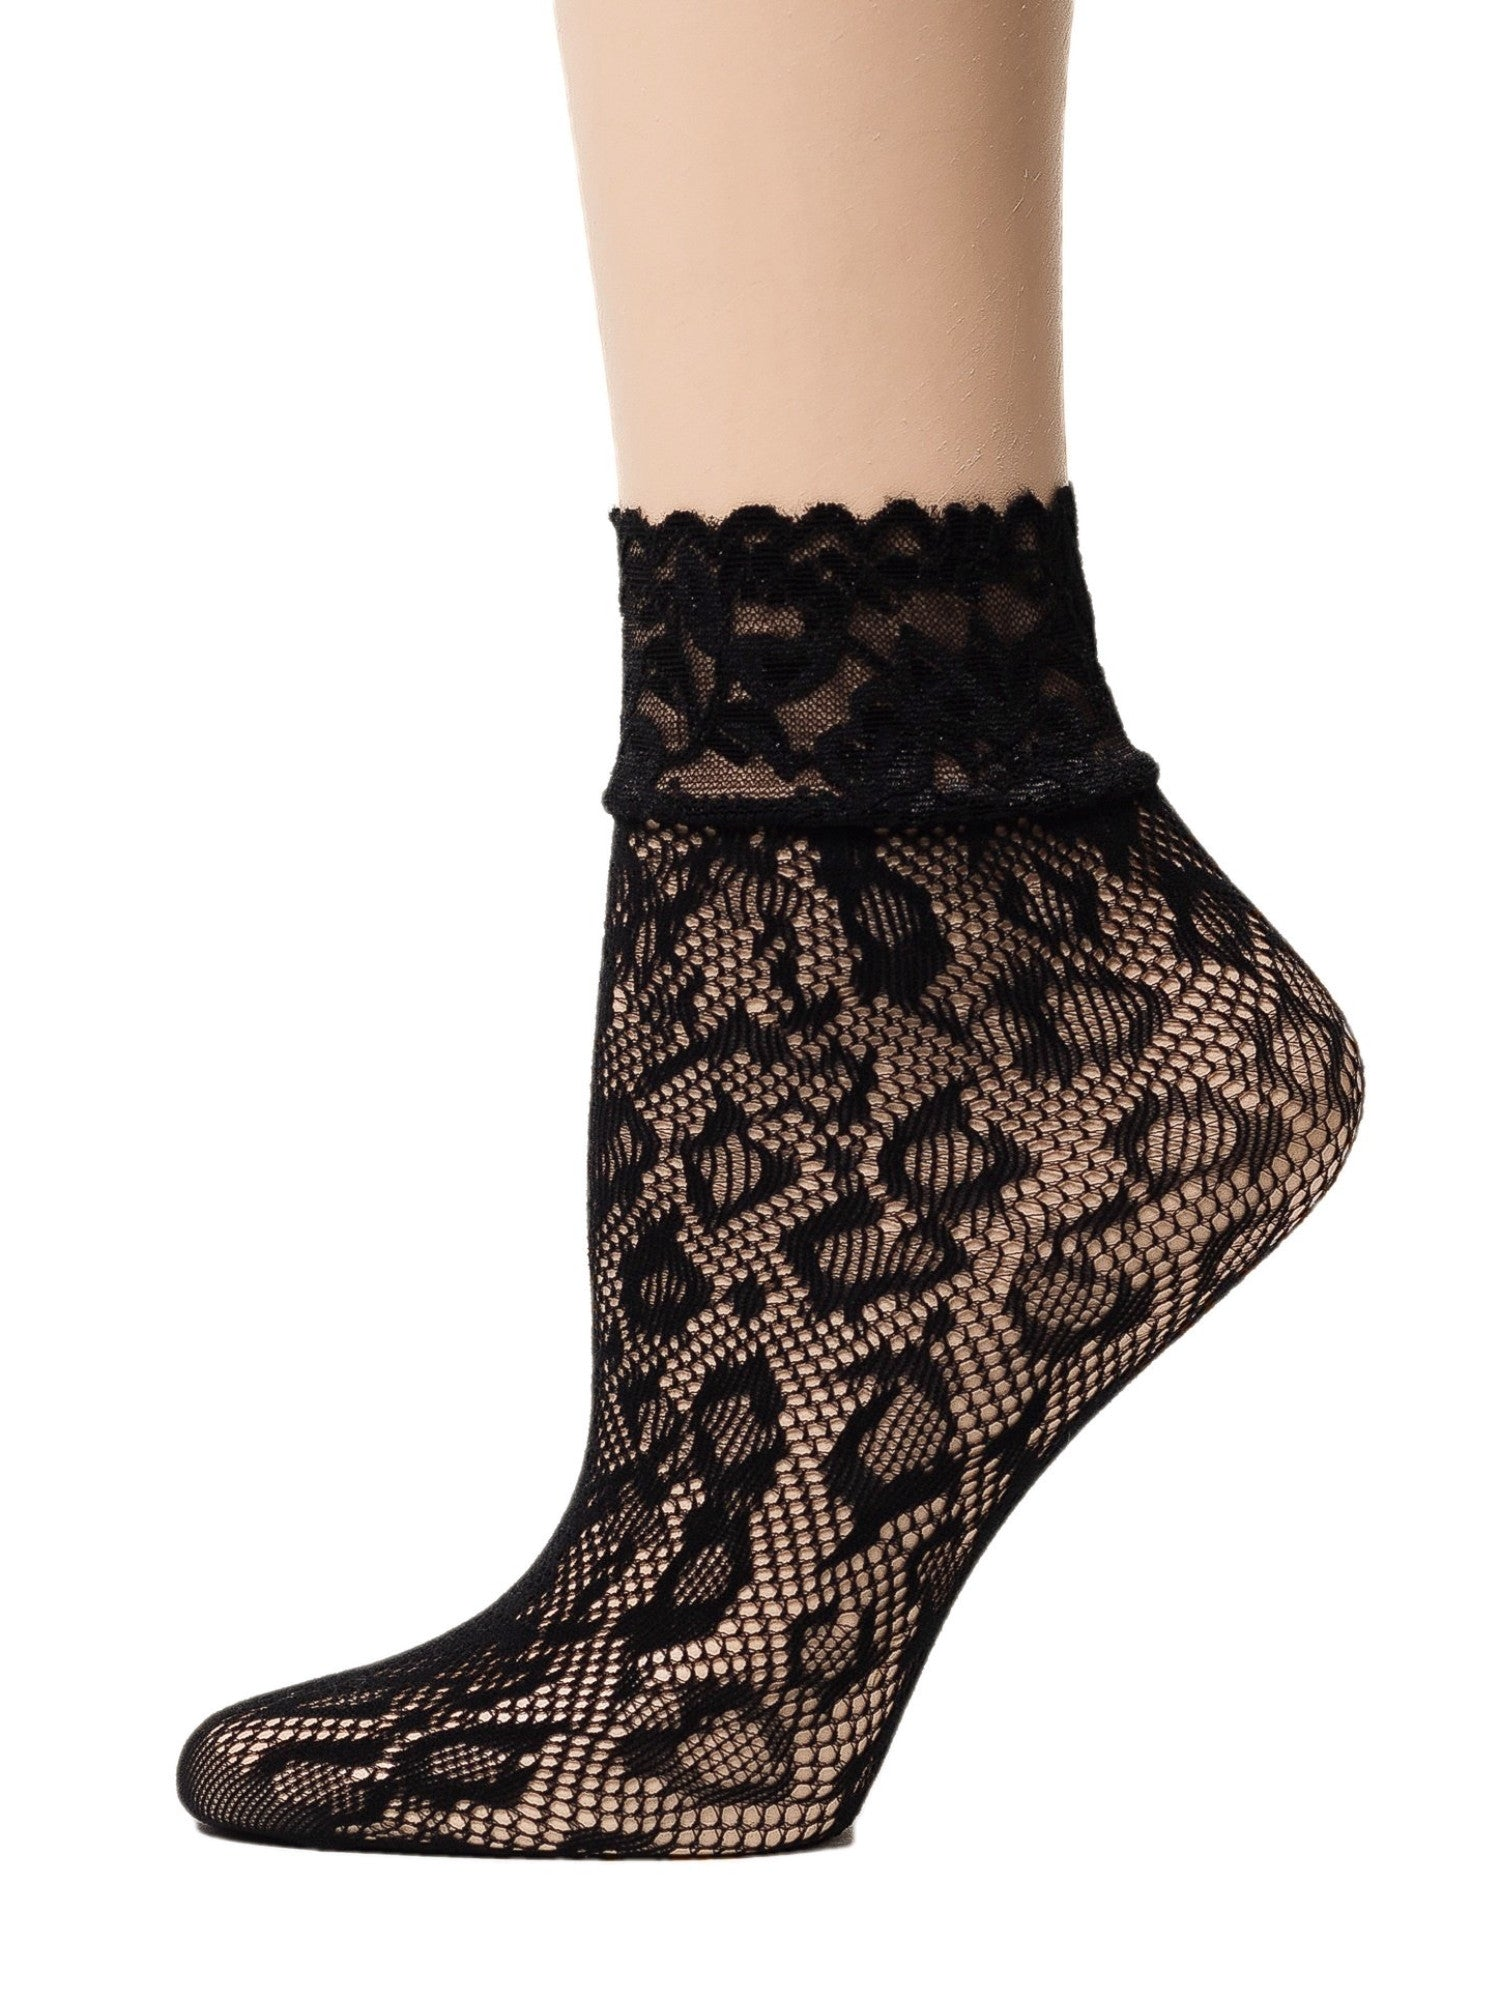 Cheetah Black Mesh Socks - Global Trendz Fashion®